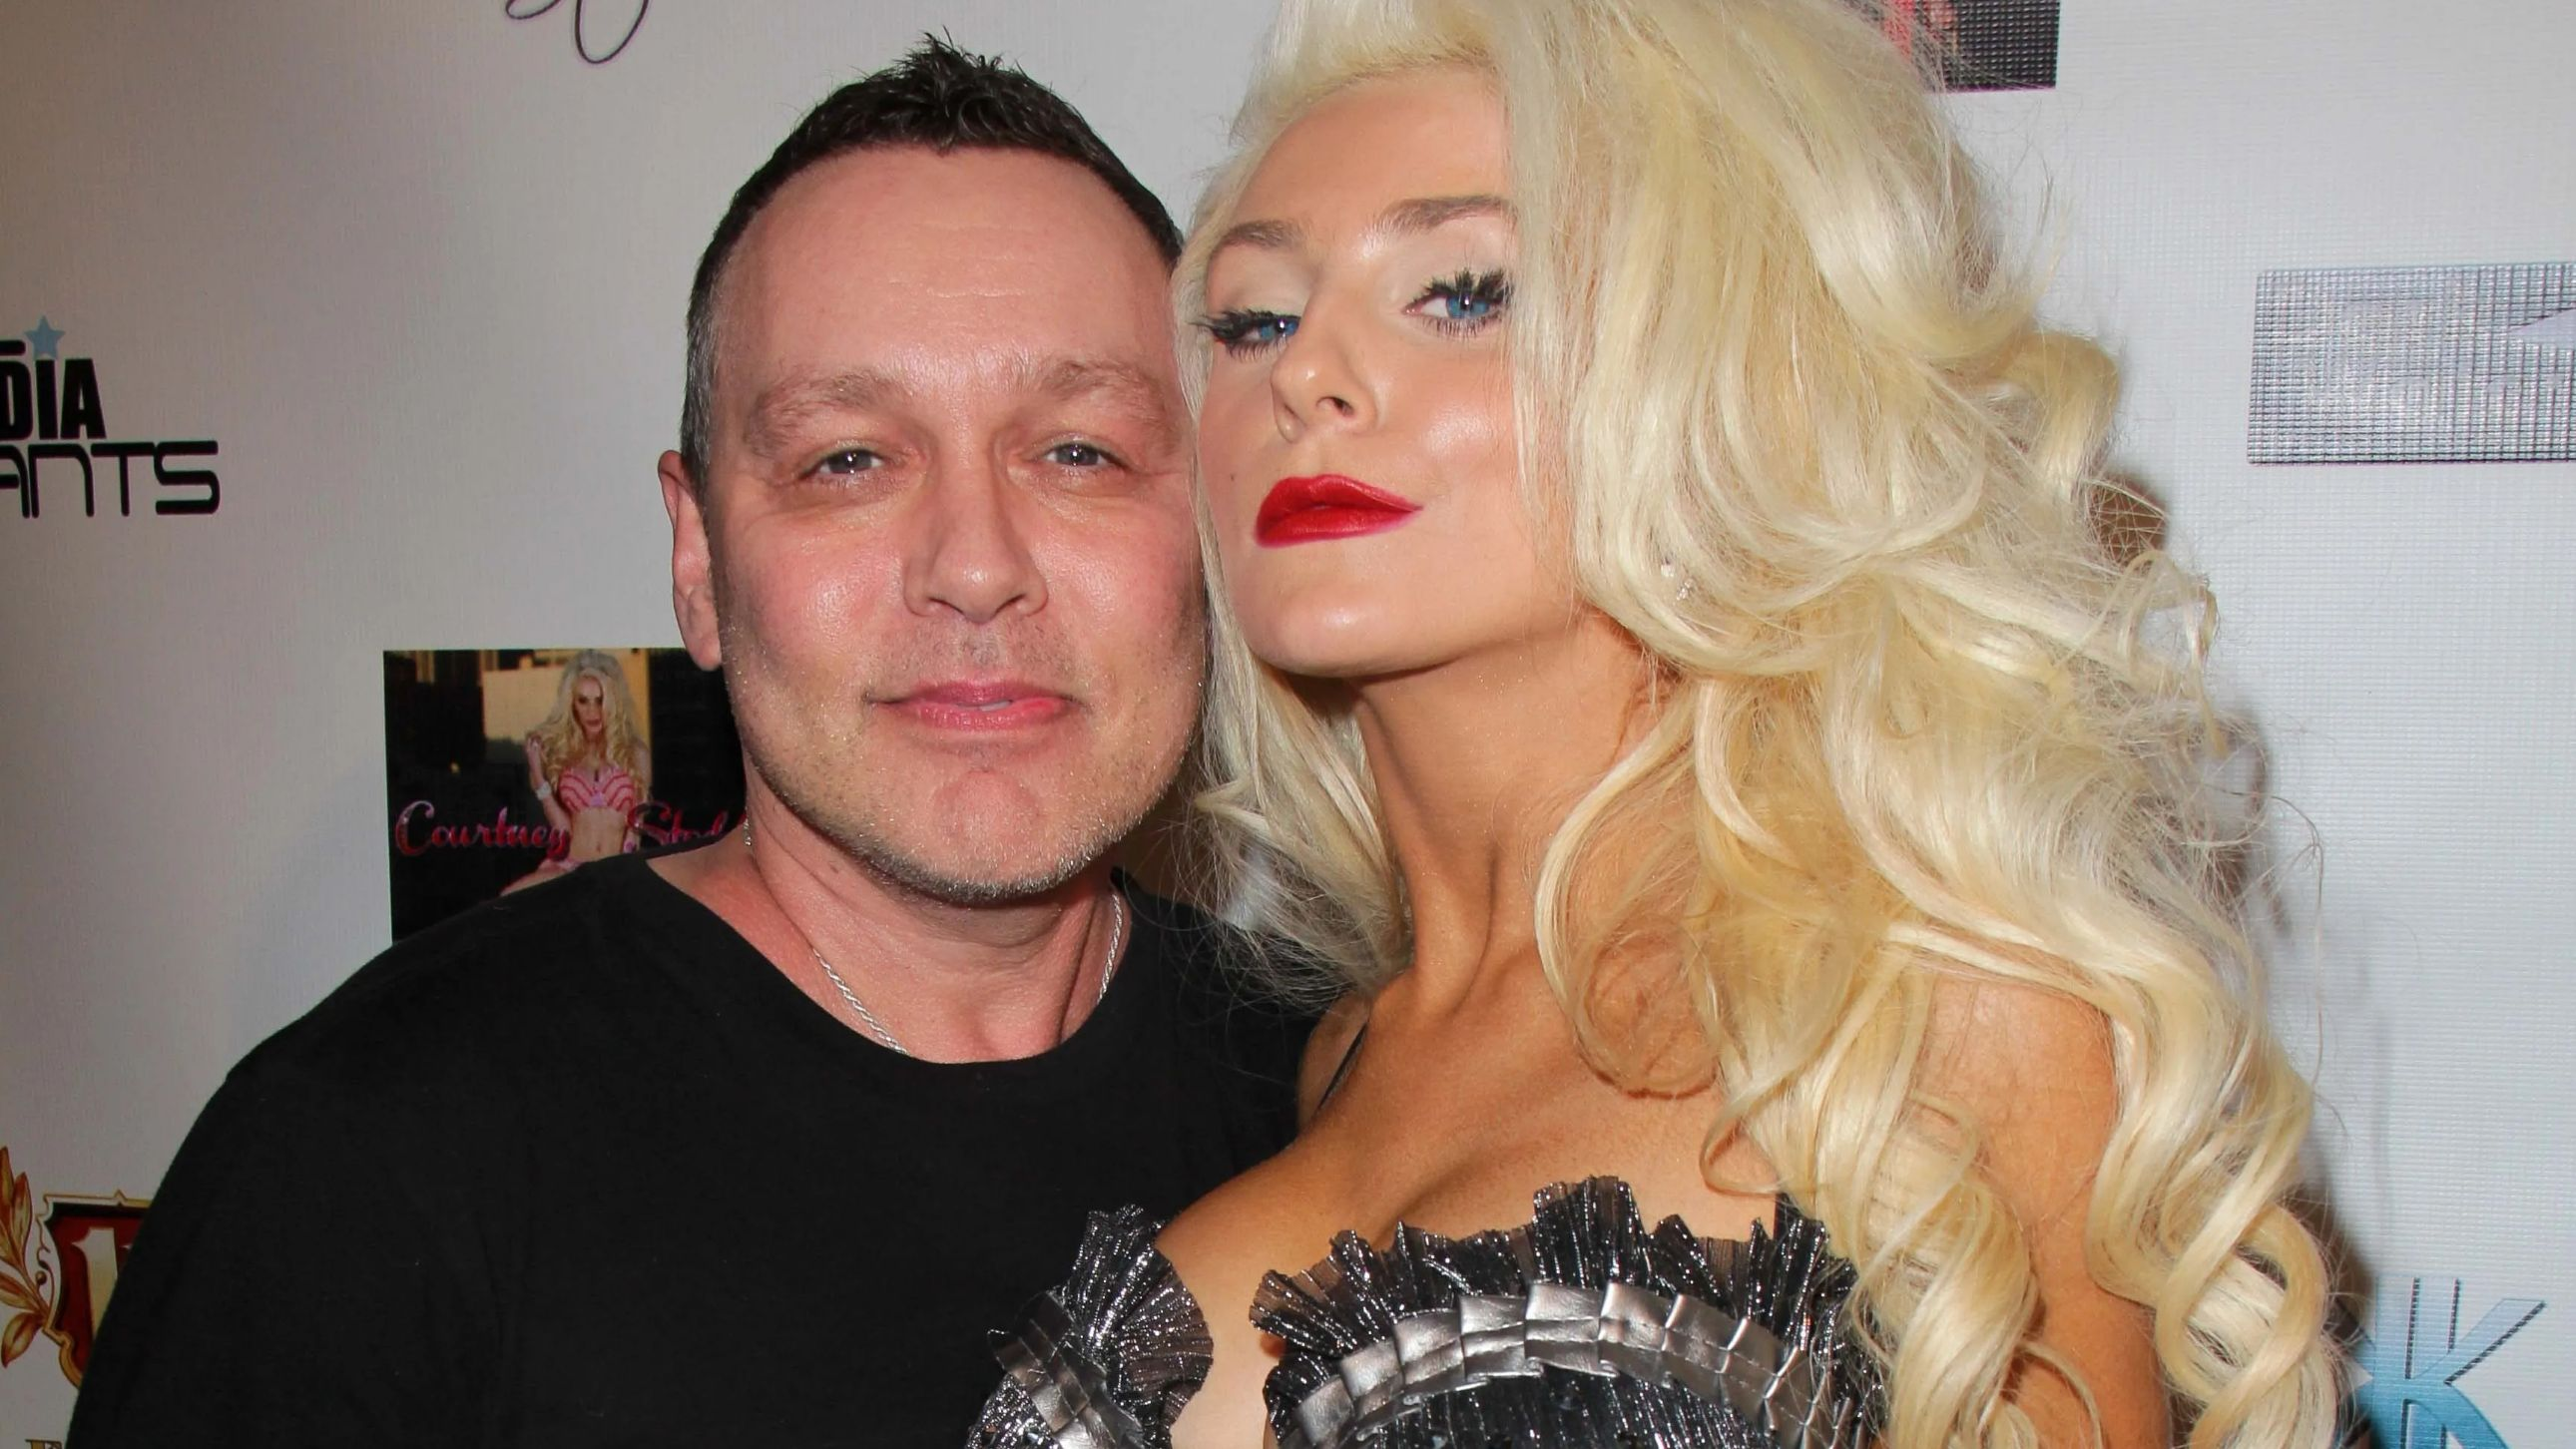 Courtney Stodden Exposes Alleged Messages Between Ex Husband Doug Hutchison And Apparent Underage Girl